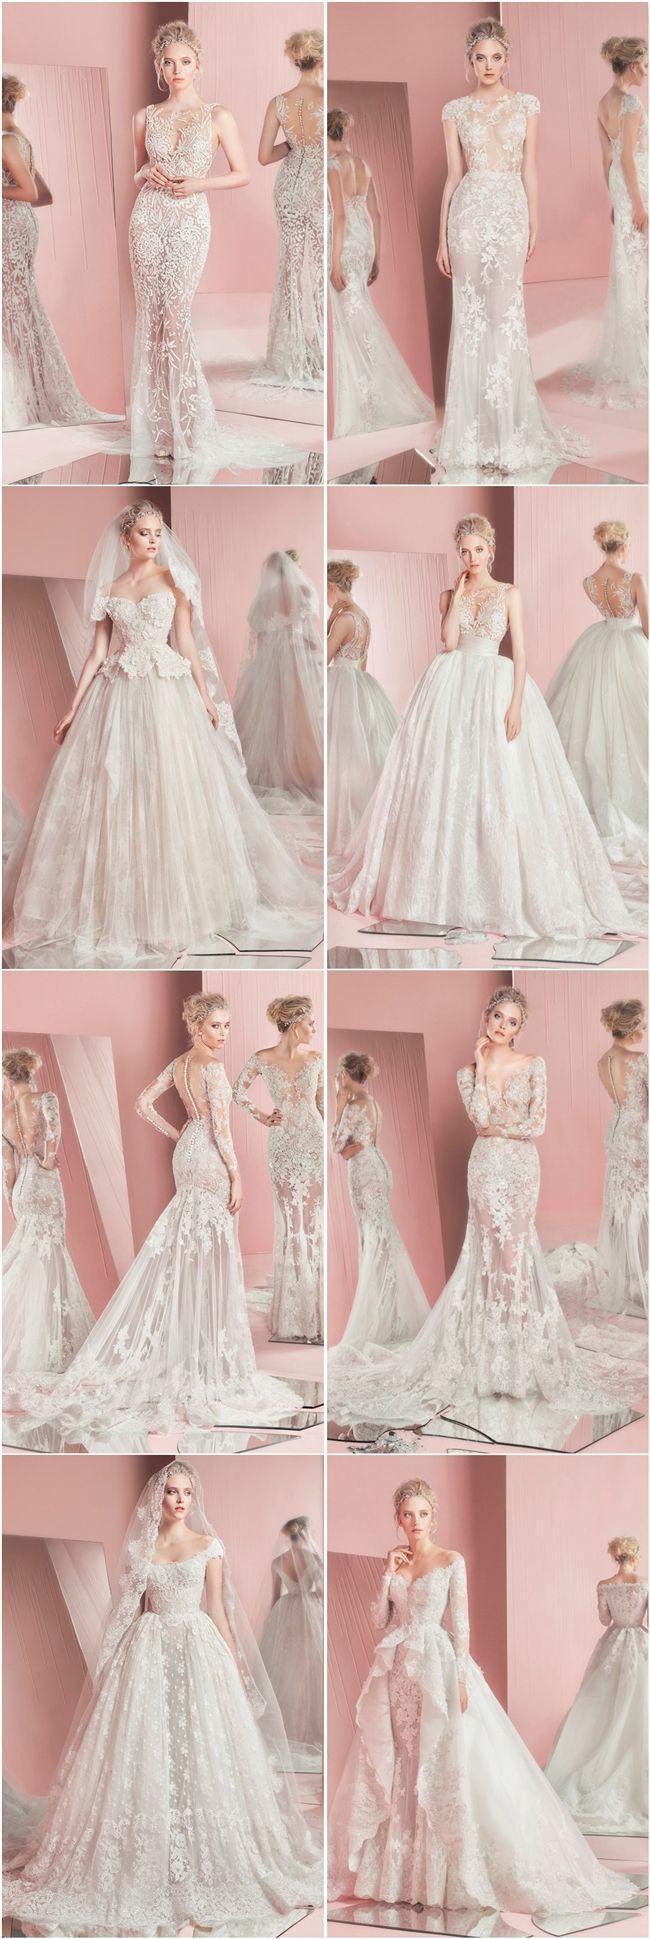 best wedding dress images on pinterest